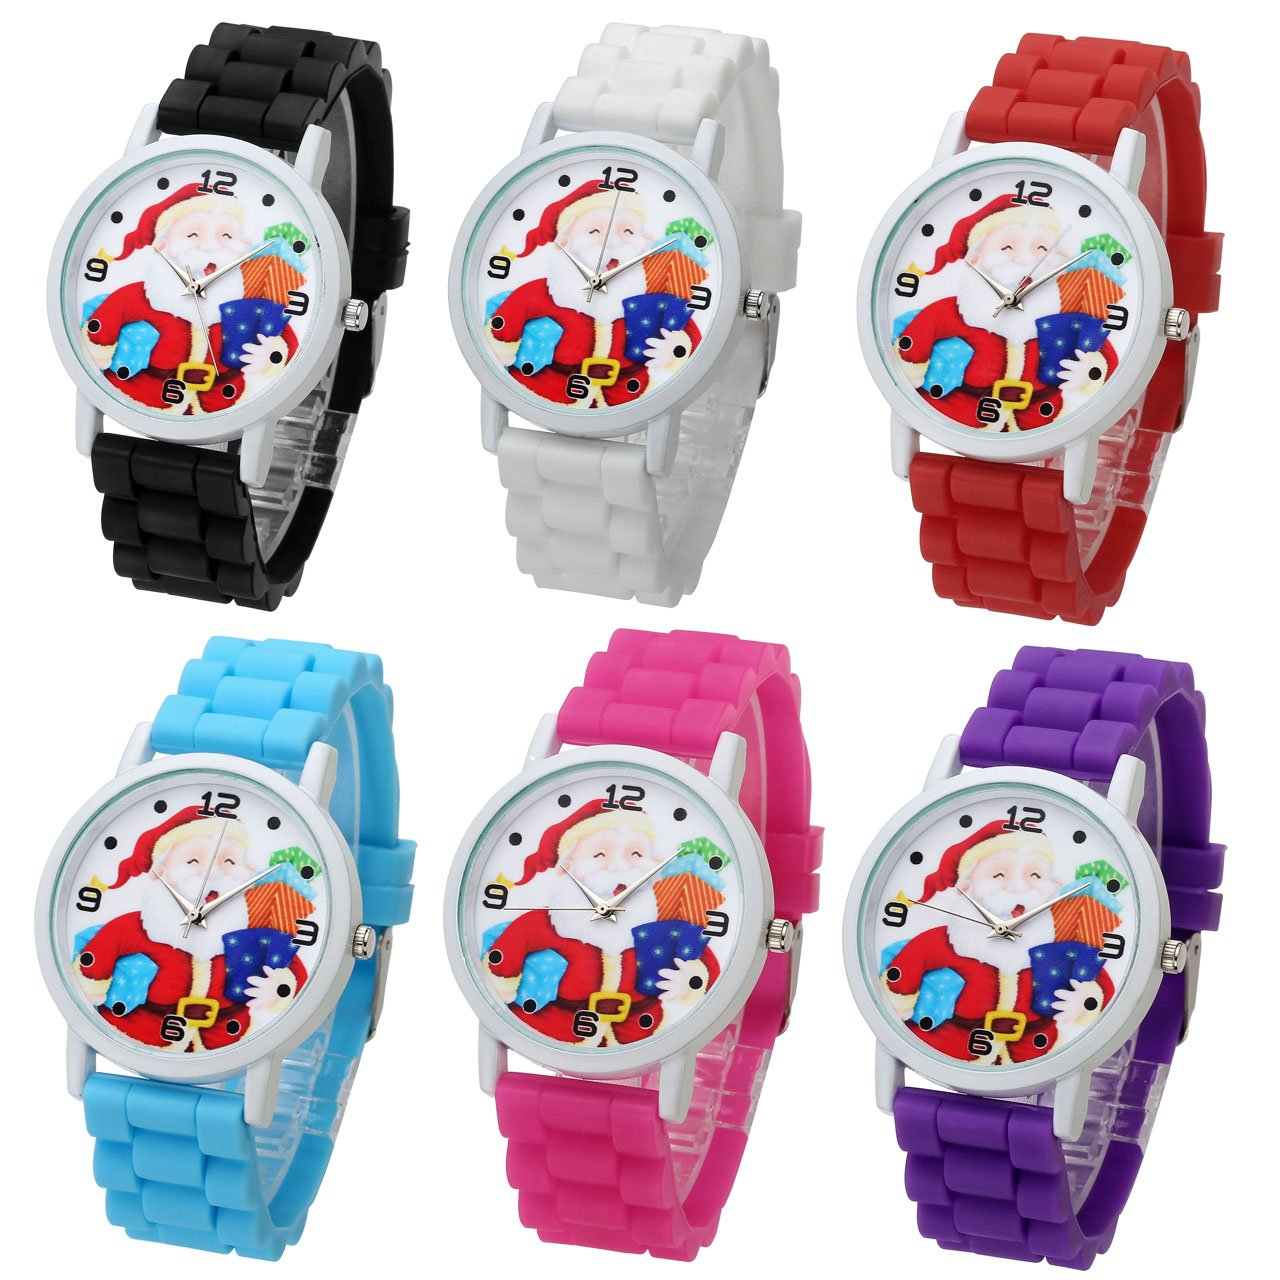 Top Plaza Cute Casual Father Christmas Analog Quartz Watch Santa Claus Pattern Silicone Band Arabic Numerals Wrist Watch for Kids Children #1(Pack of 6)